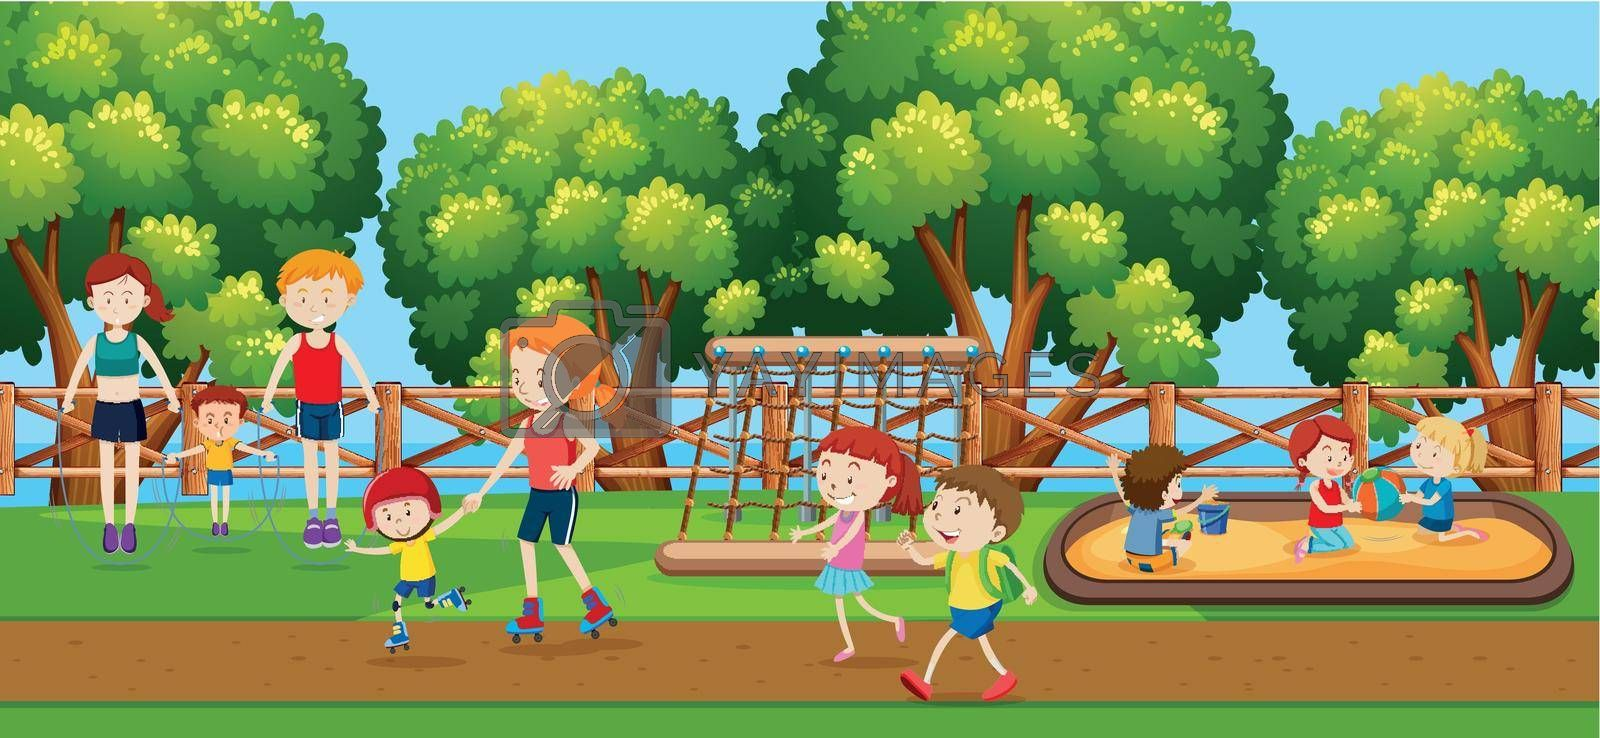 Royalty free image of People at the park by iimages